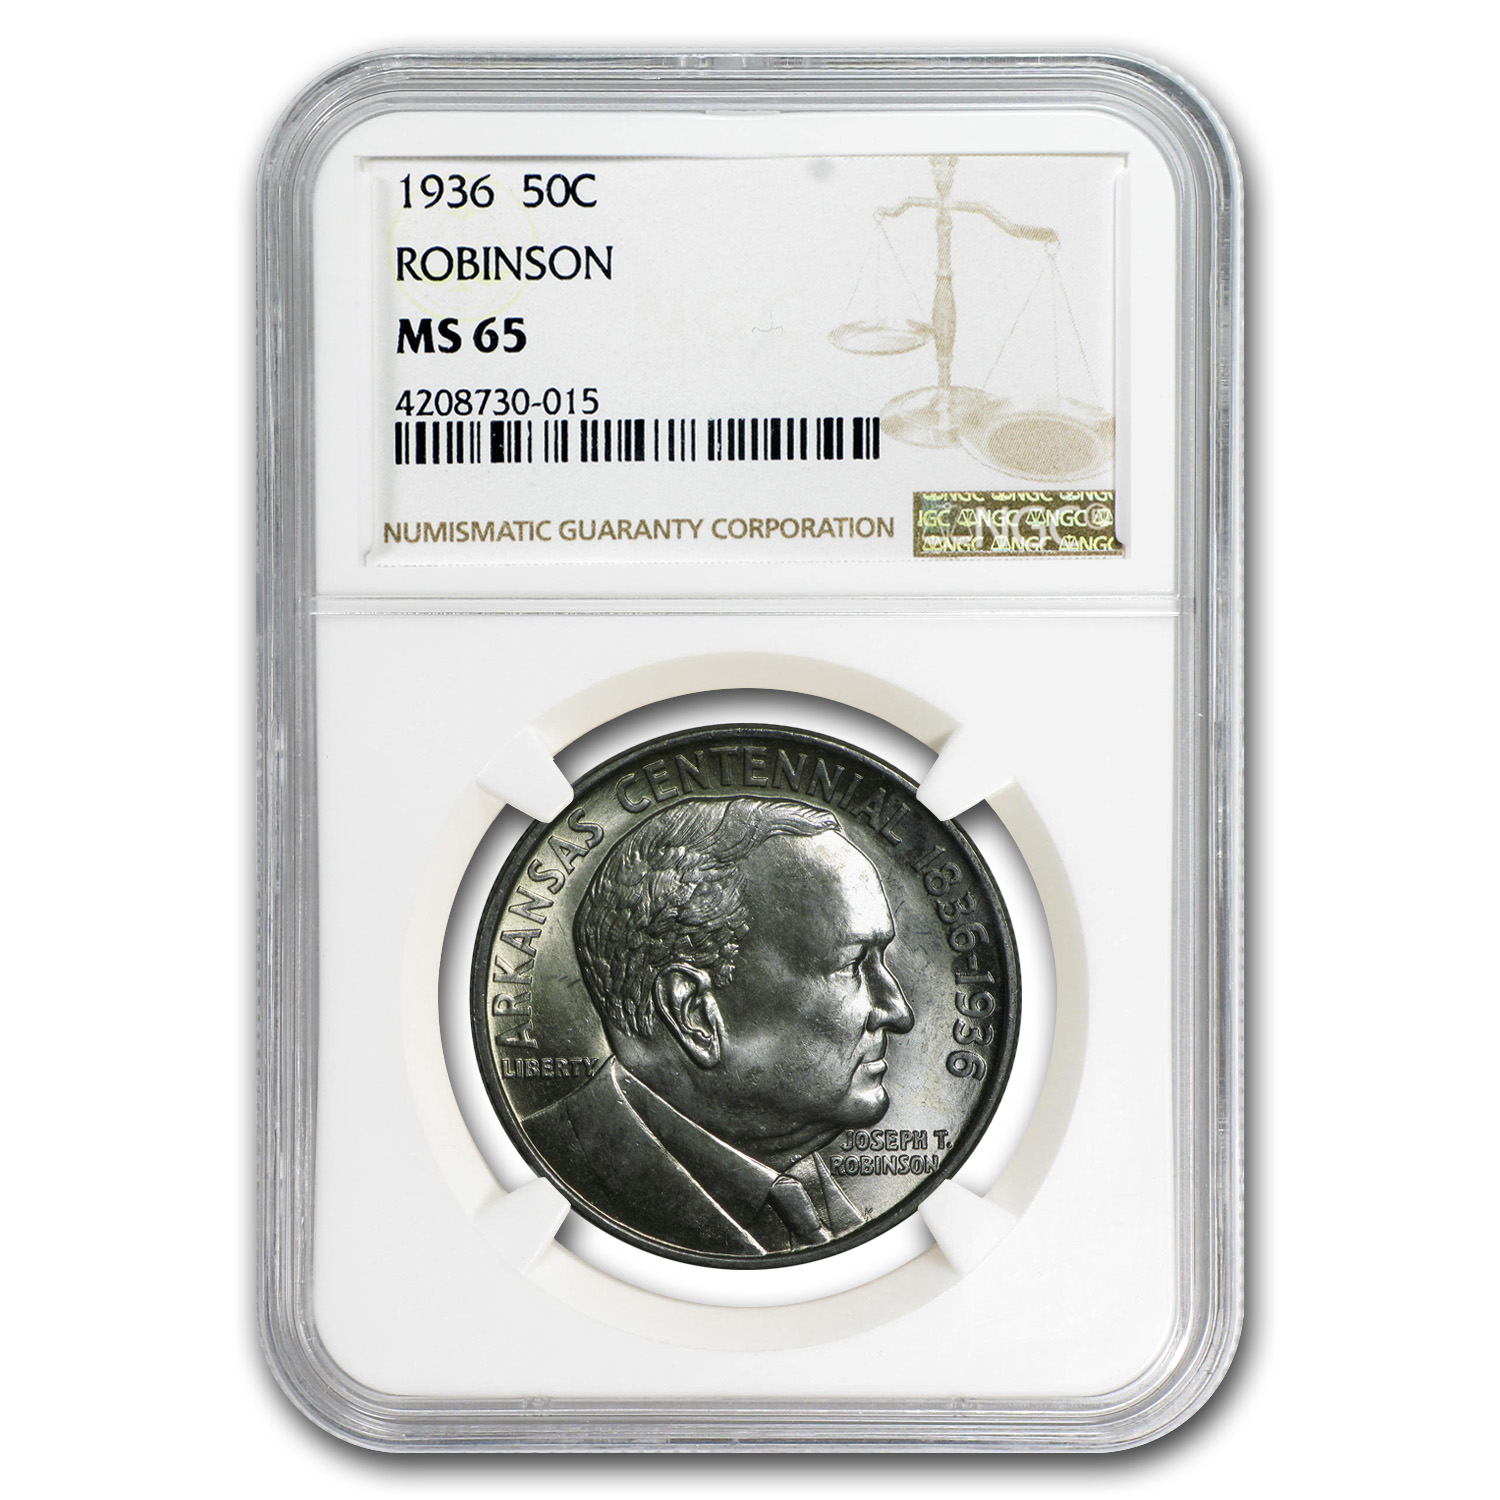 1936 Robinson-Arkansas Half Dollar MS-65 NGC